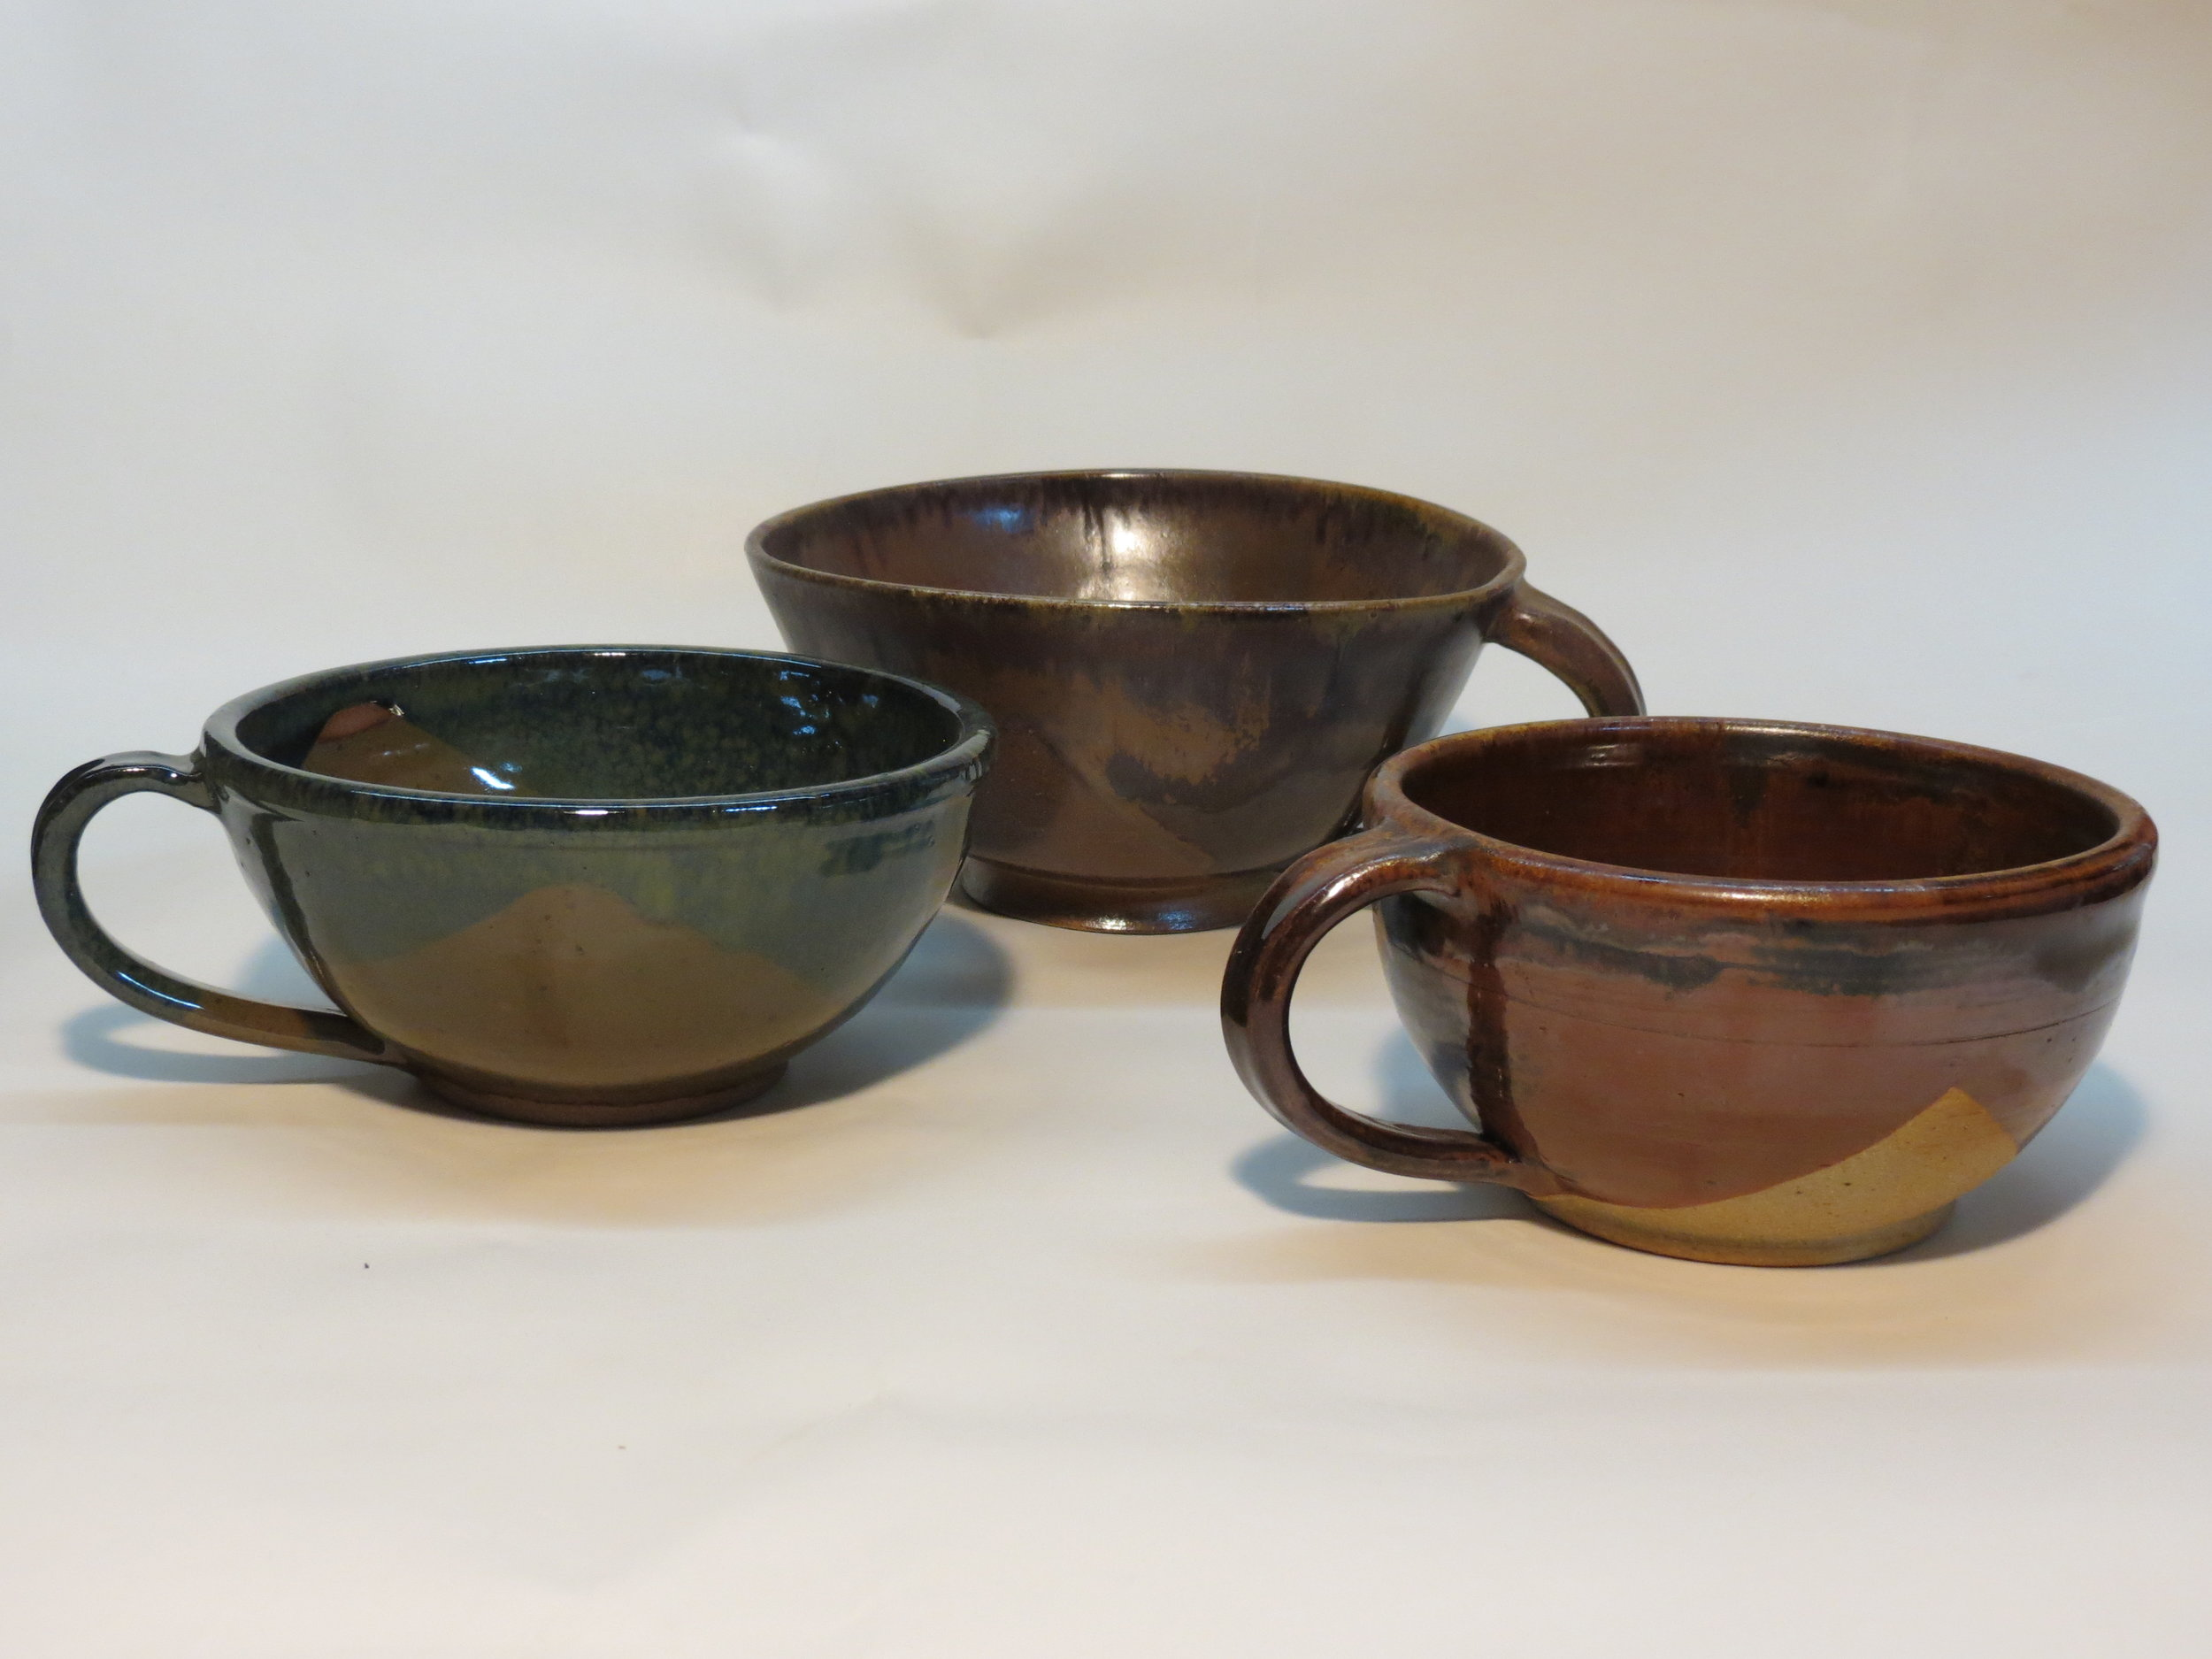 The handled bowls are inspired by bowls used in medieval times. Travelers would carry their utensils on their belts and thus be ready to partake of the soup or stew at the inn.